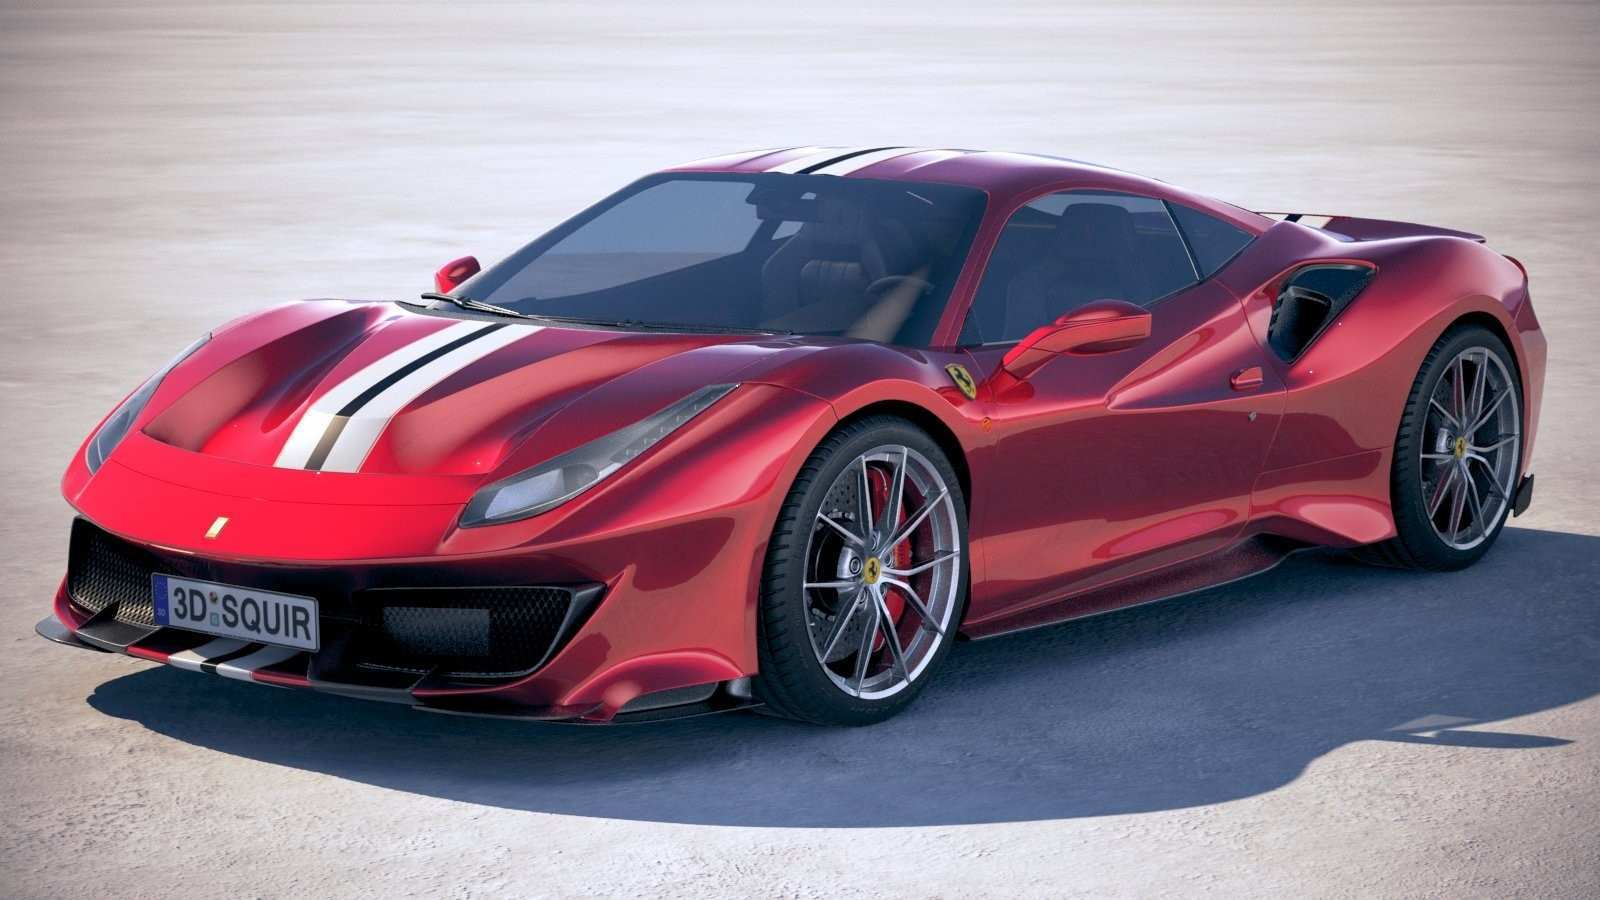 94 New 2019 Ferrari 488 Pista For Sale Release with 2019 Ferrari 488 Pista For Sale